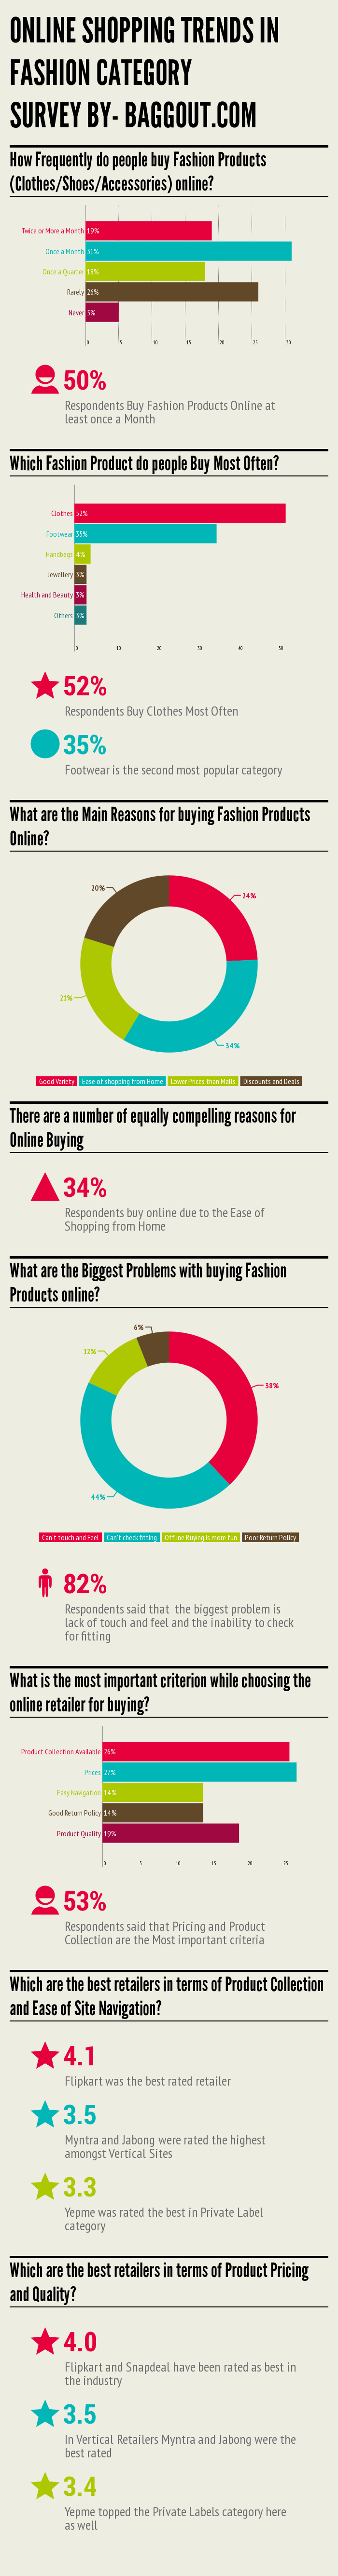 Fashion Category Trends Infographic [Infographic] Online shopping trends in Fashion Category : Snapdeal and Flipkart are rated best in the Industry